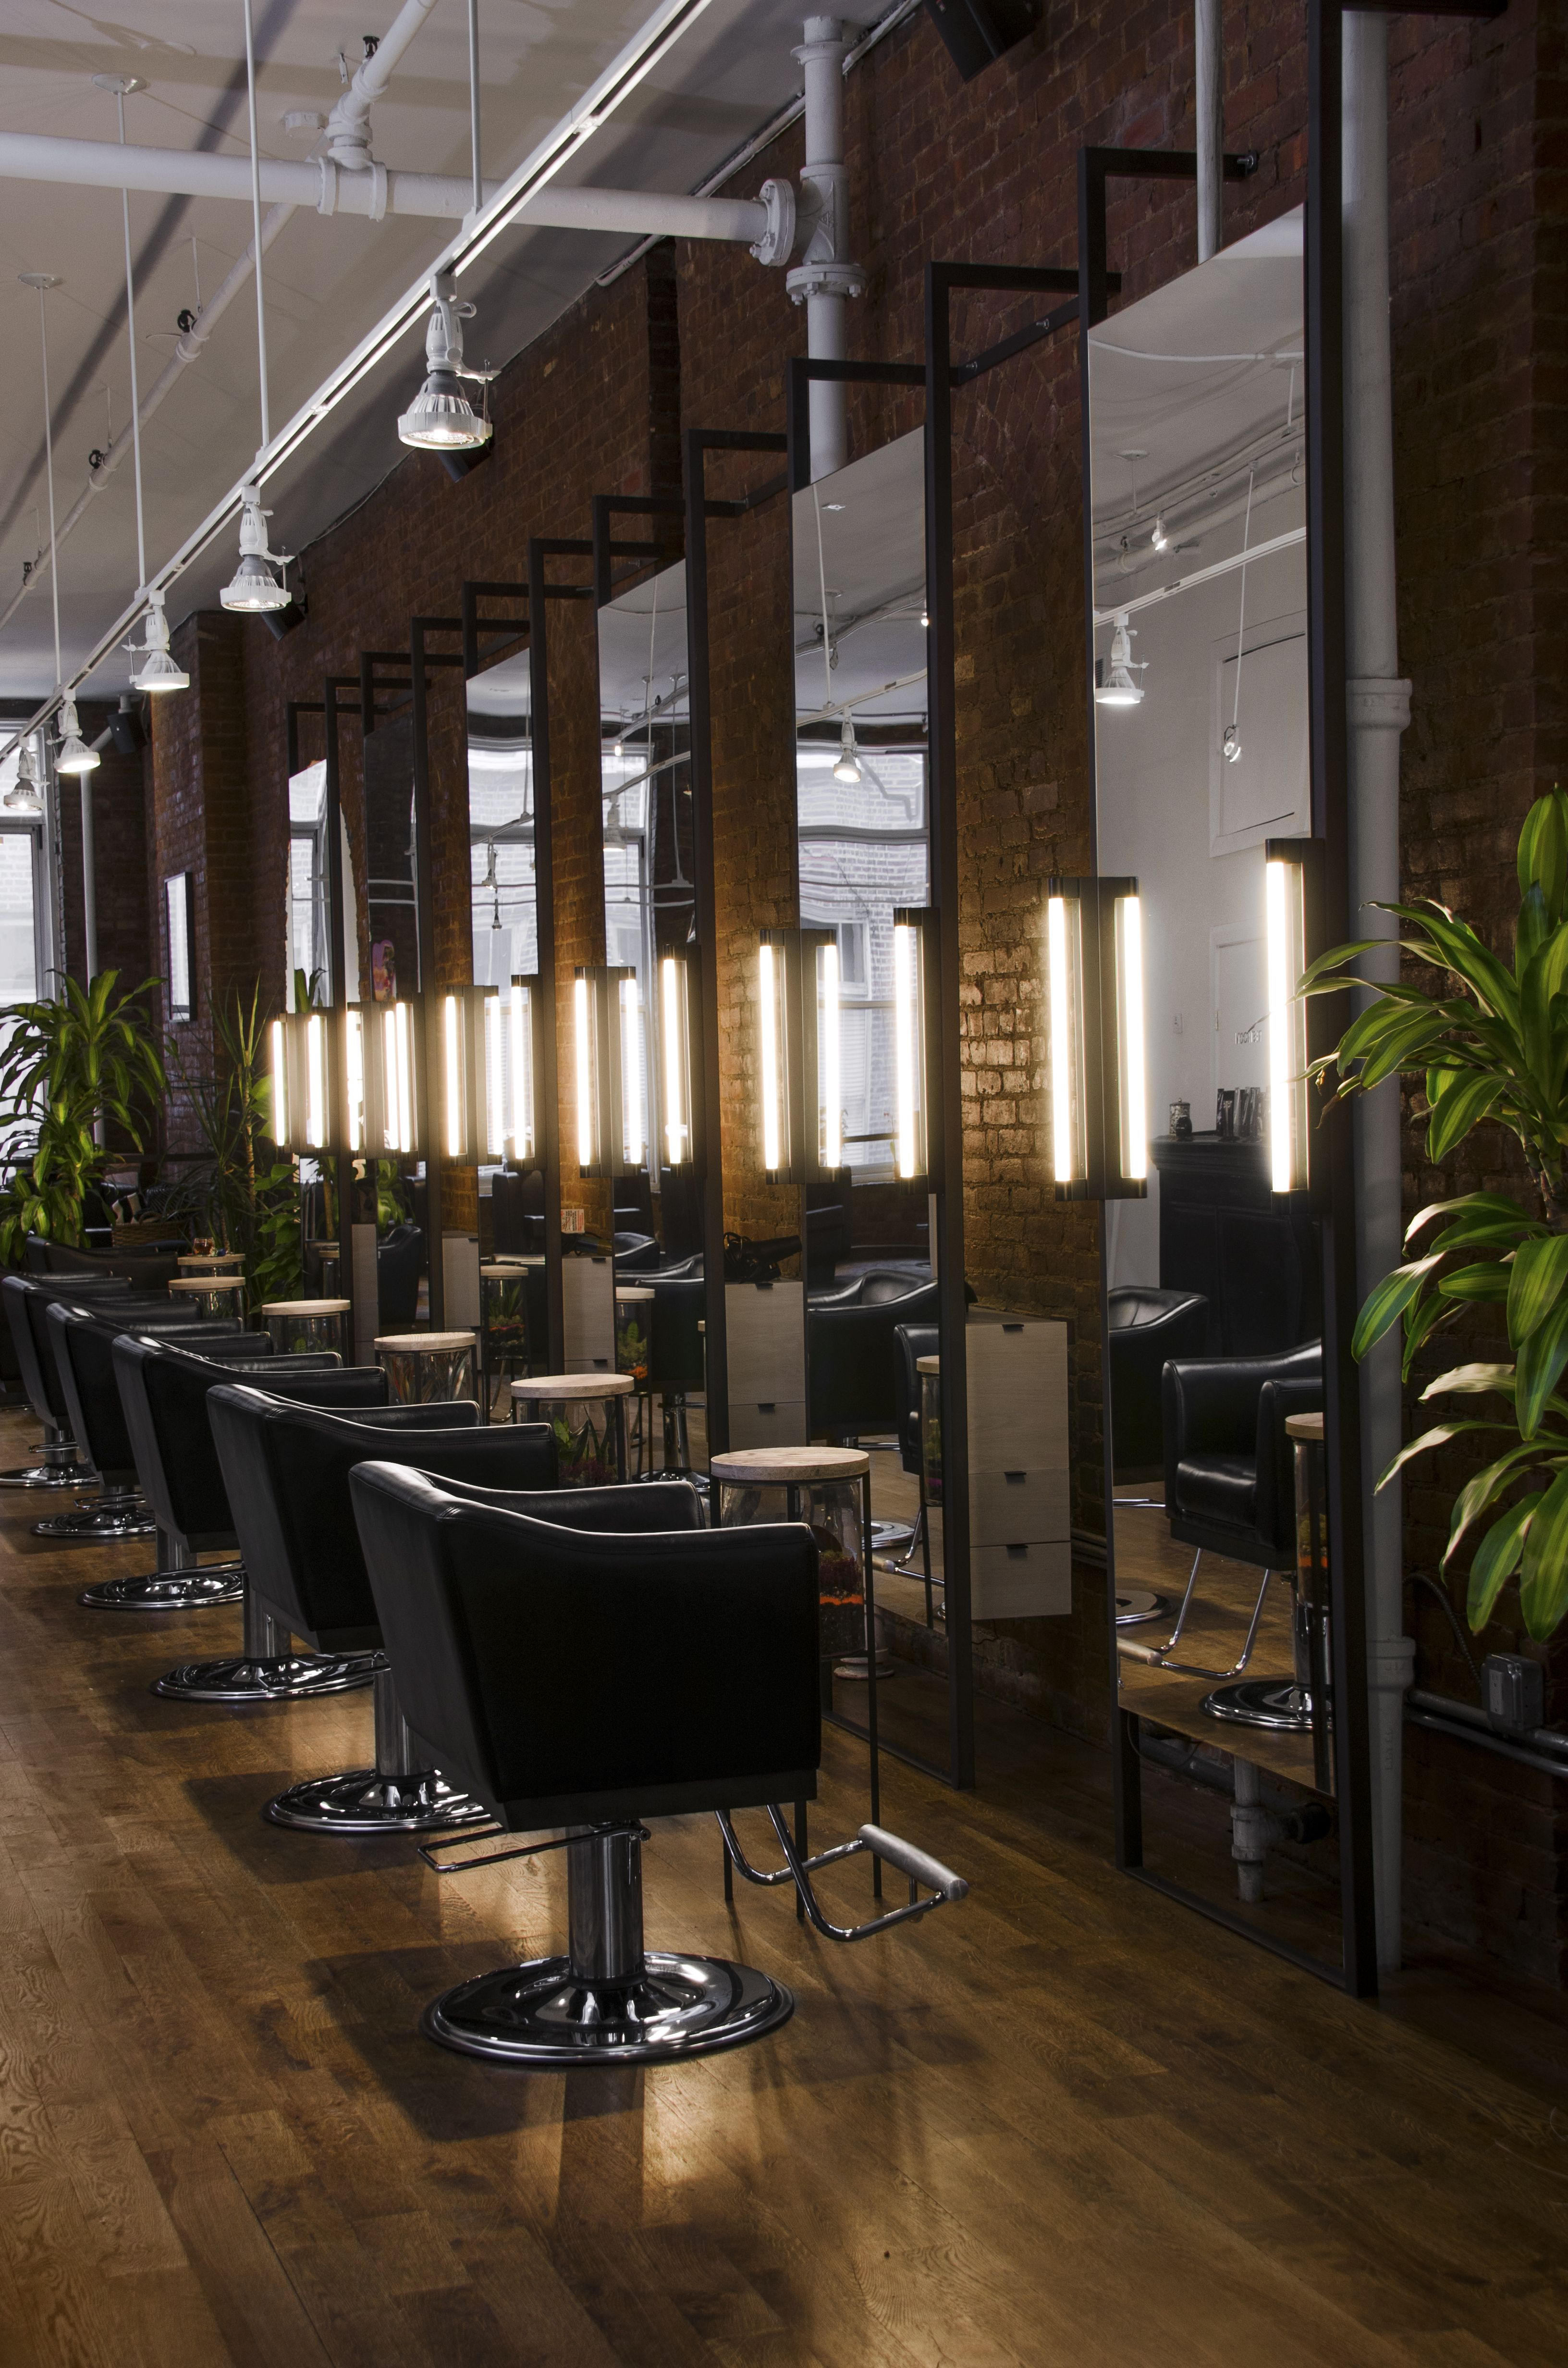 The 7 Best Hair Colorists in New York City Salons, Salon